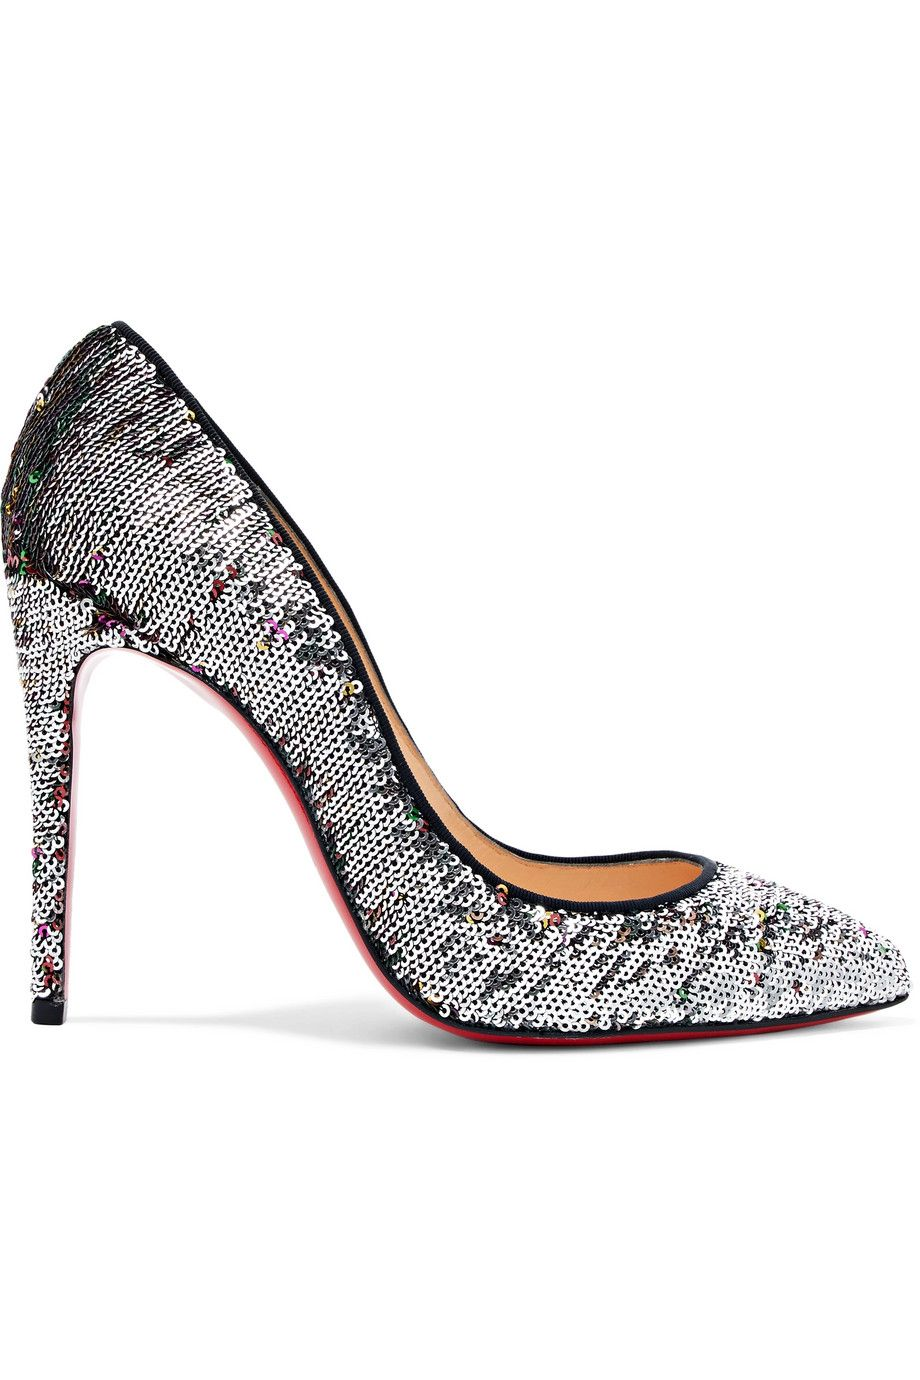 edaae1ef7c1 Christian Louboutin - Pigalle Follies 100 Sequined Canvas Pumps ...